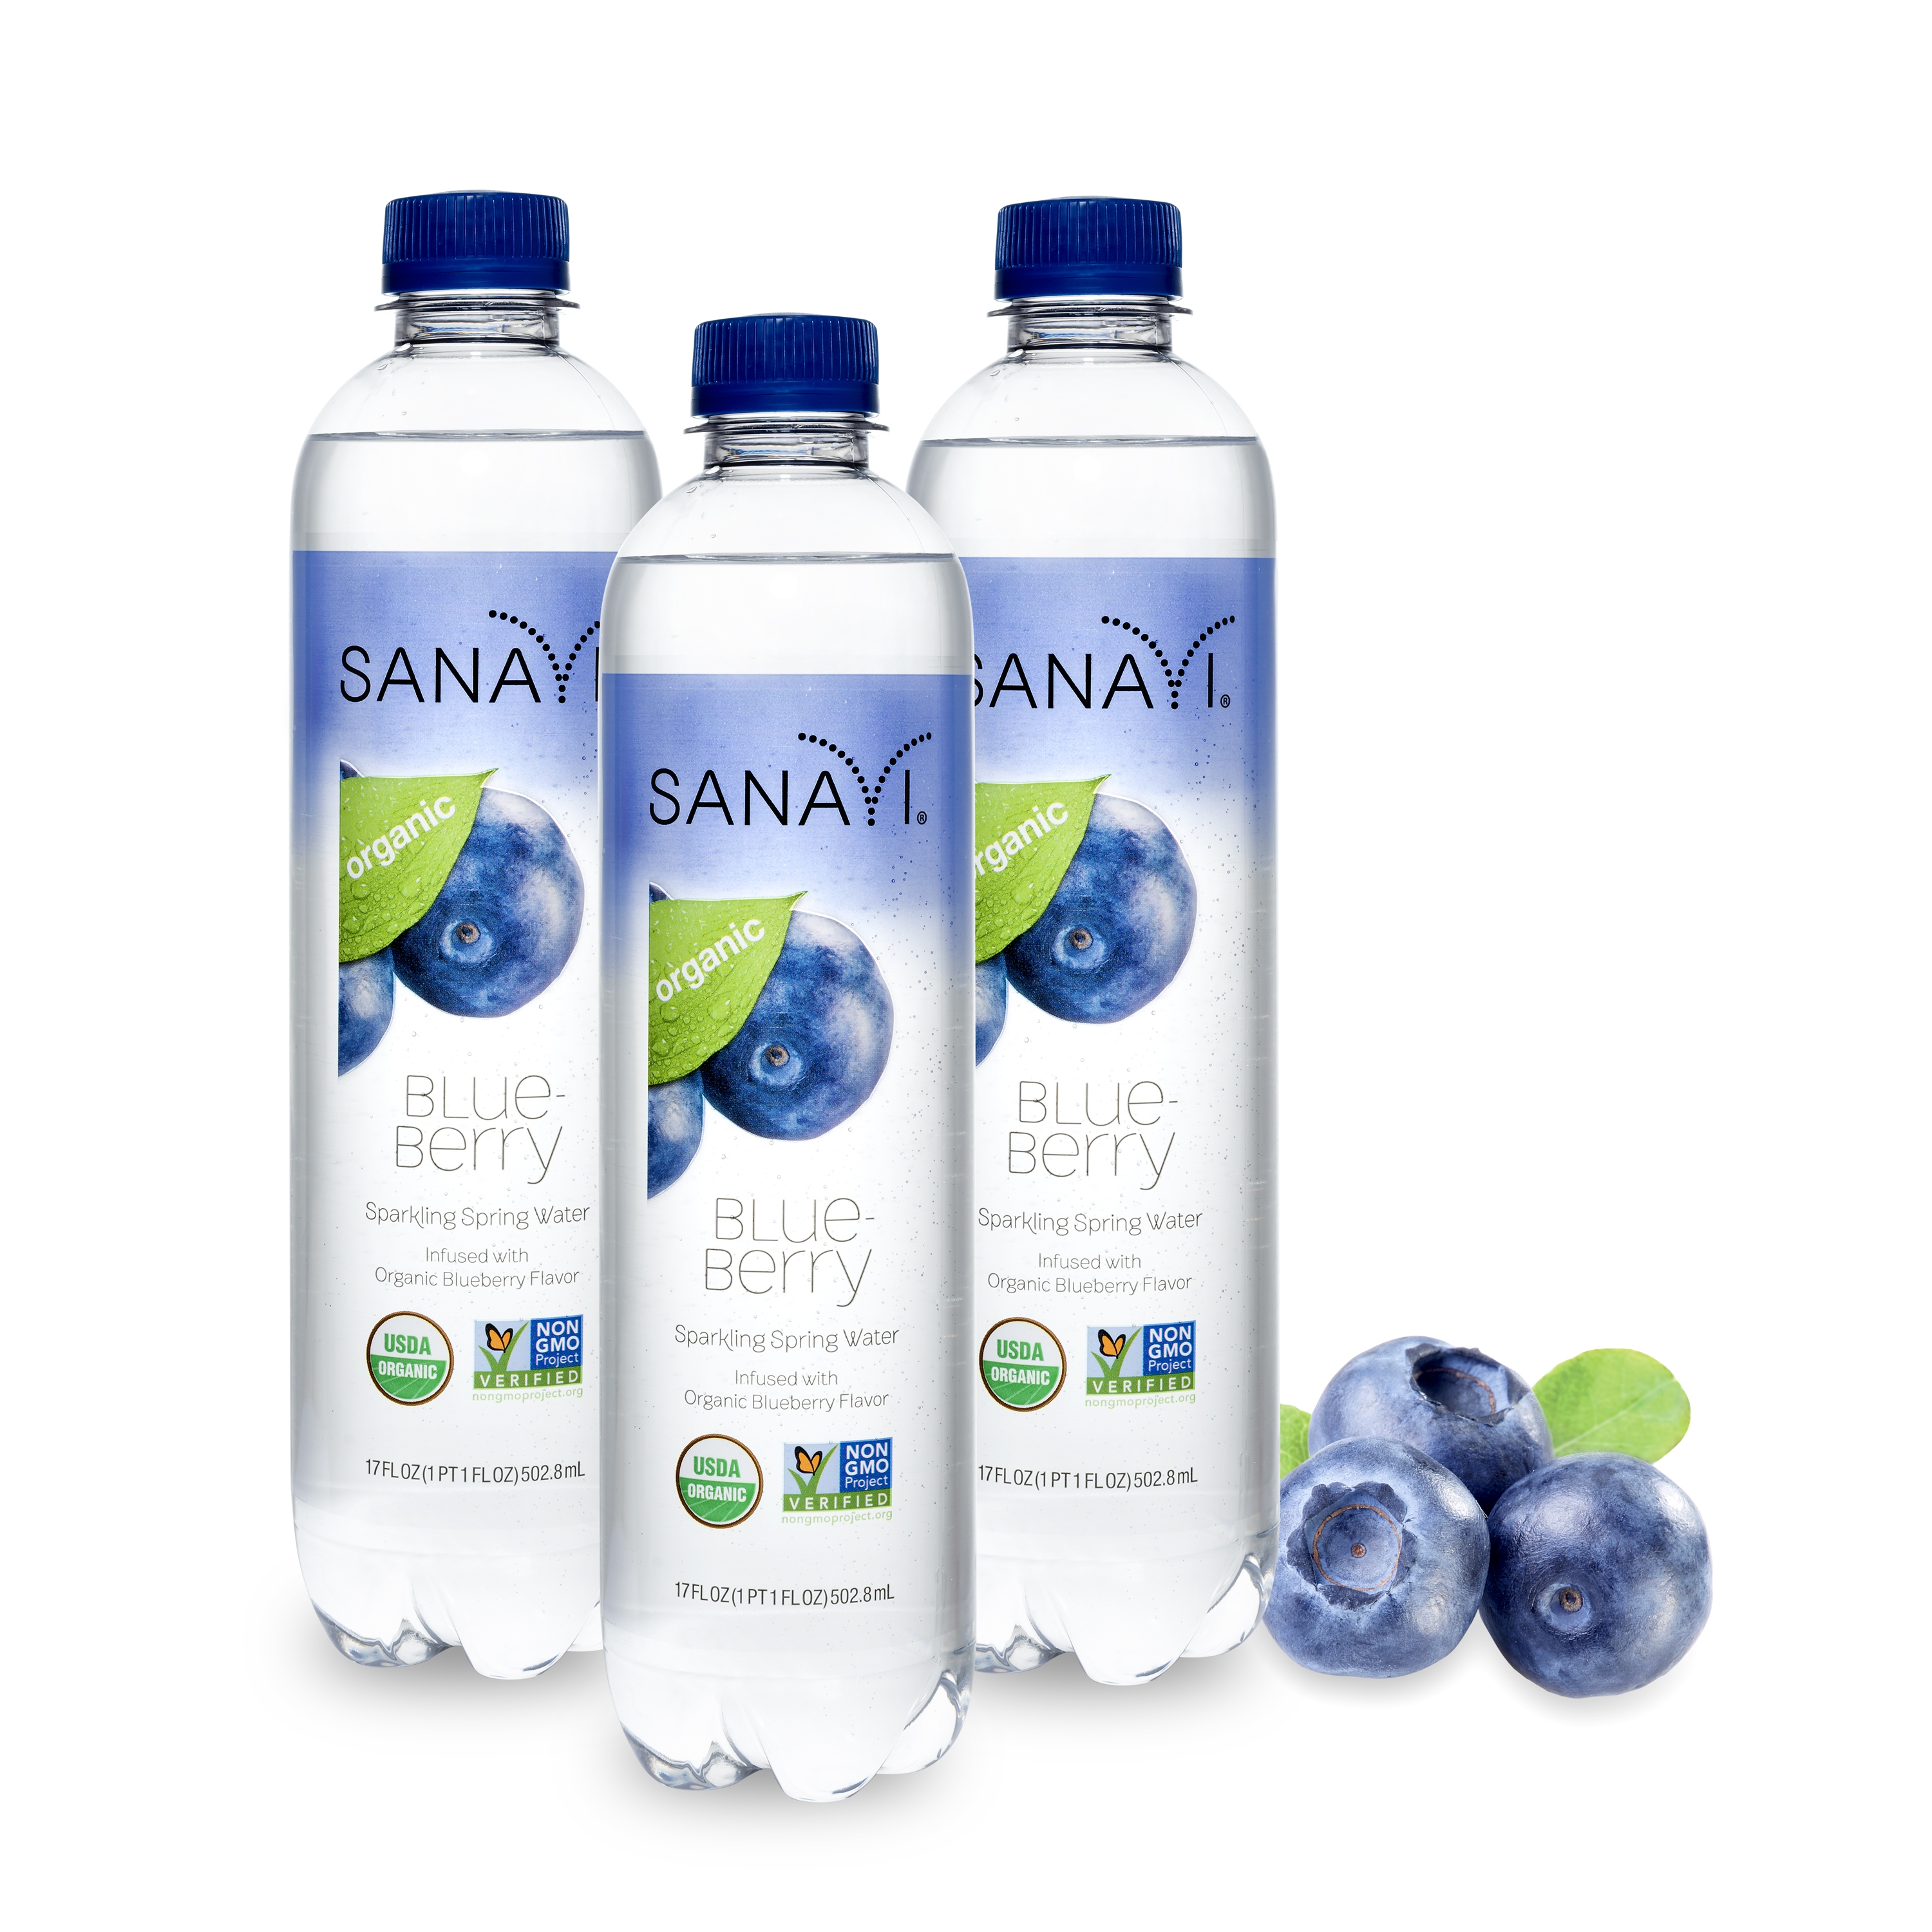 Sanavi Blueberry Sparkling Spring Water, 17 oz (3 Pack)